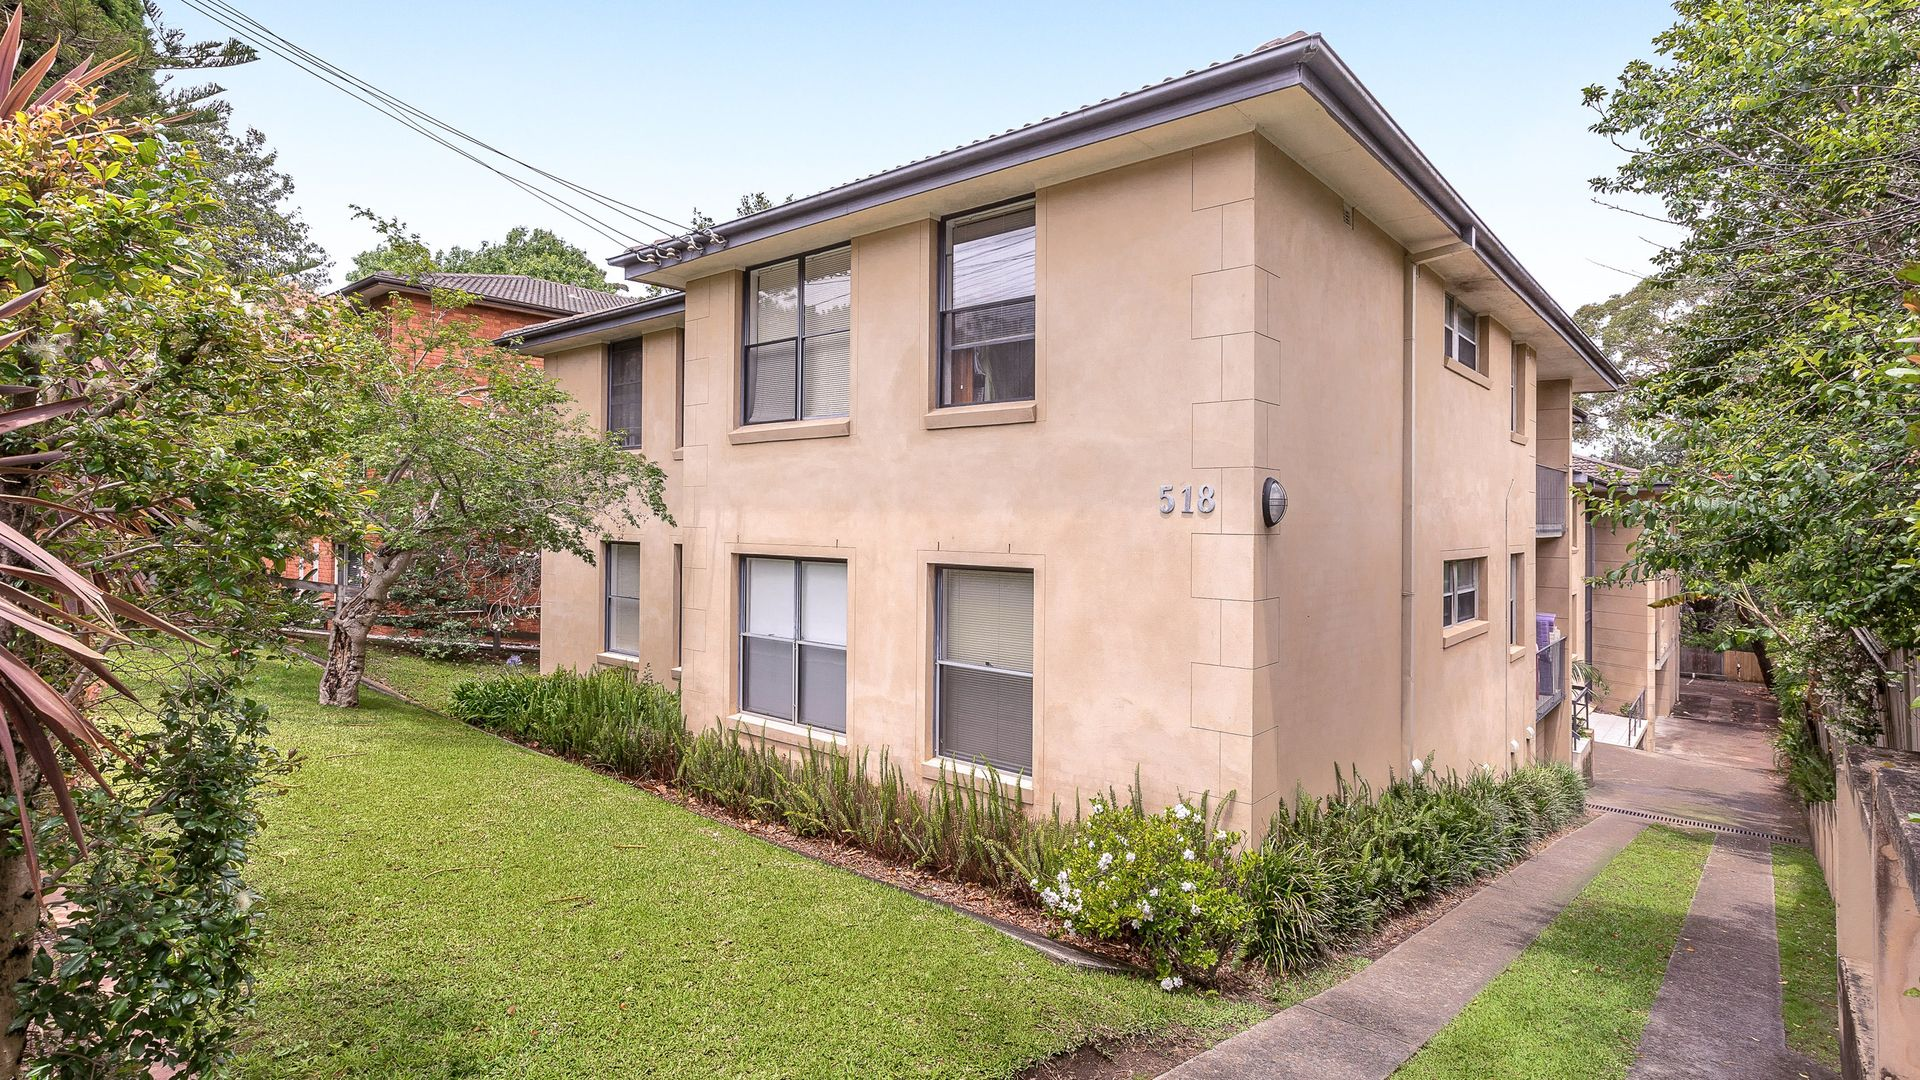 6/518 Mowbray Road, Lane Cove NSW 2066, Image 2